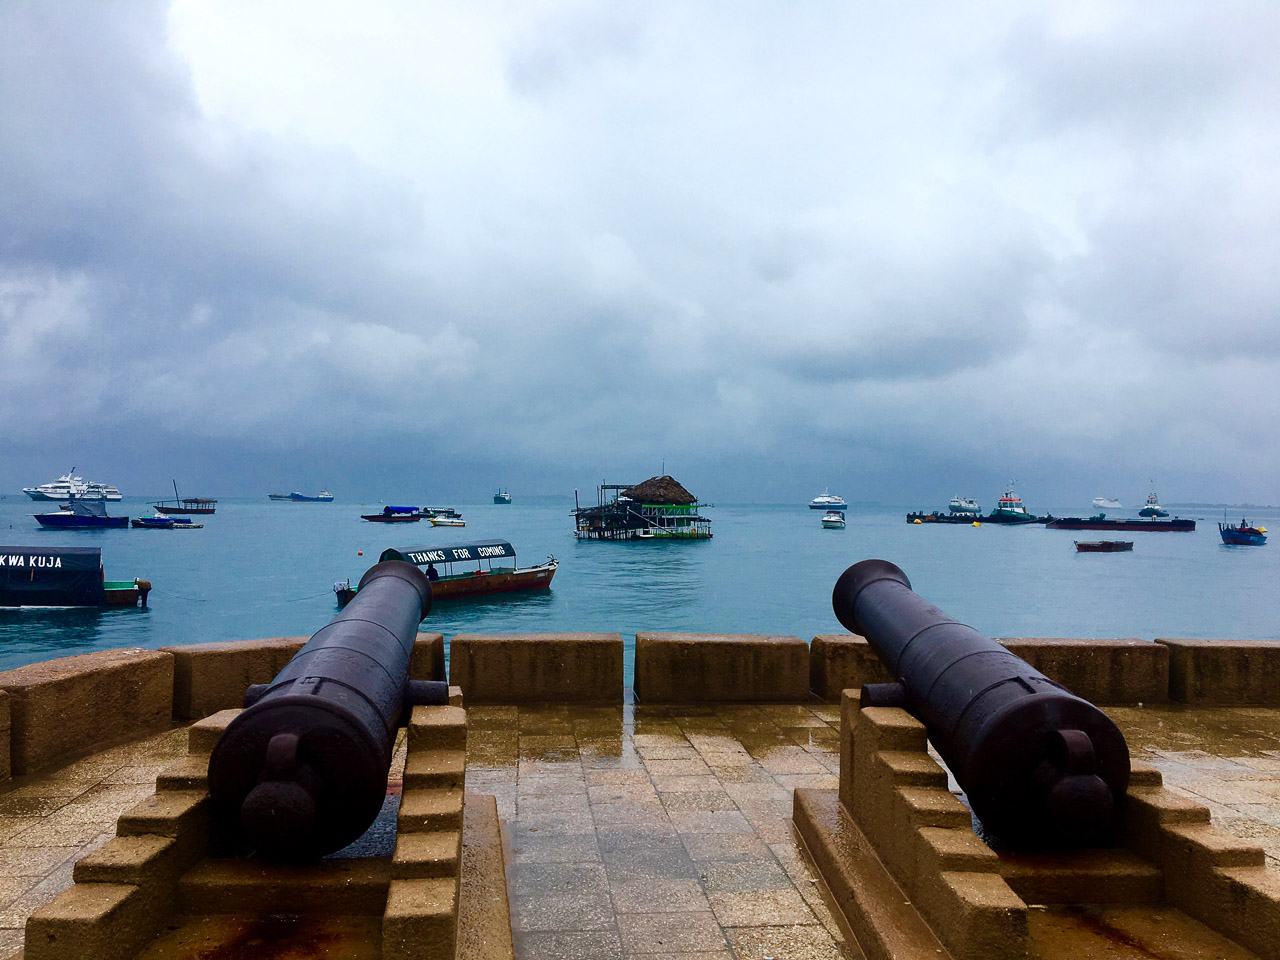 The canons on the waterfront of Stone Town are a reminder of the colonial history of Zanzibar. Expat Getaways - One Day in Stone Town, Zanzibar, Tanzania.